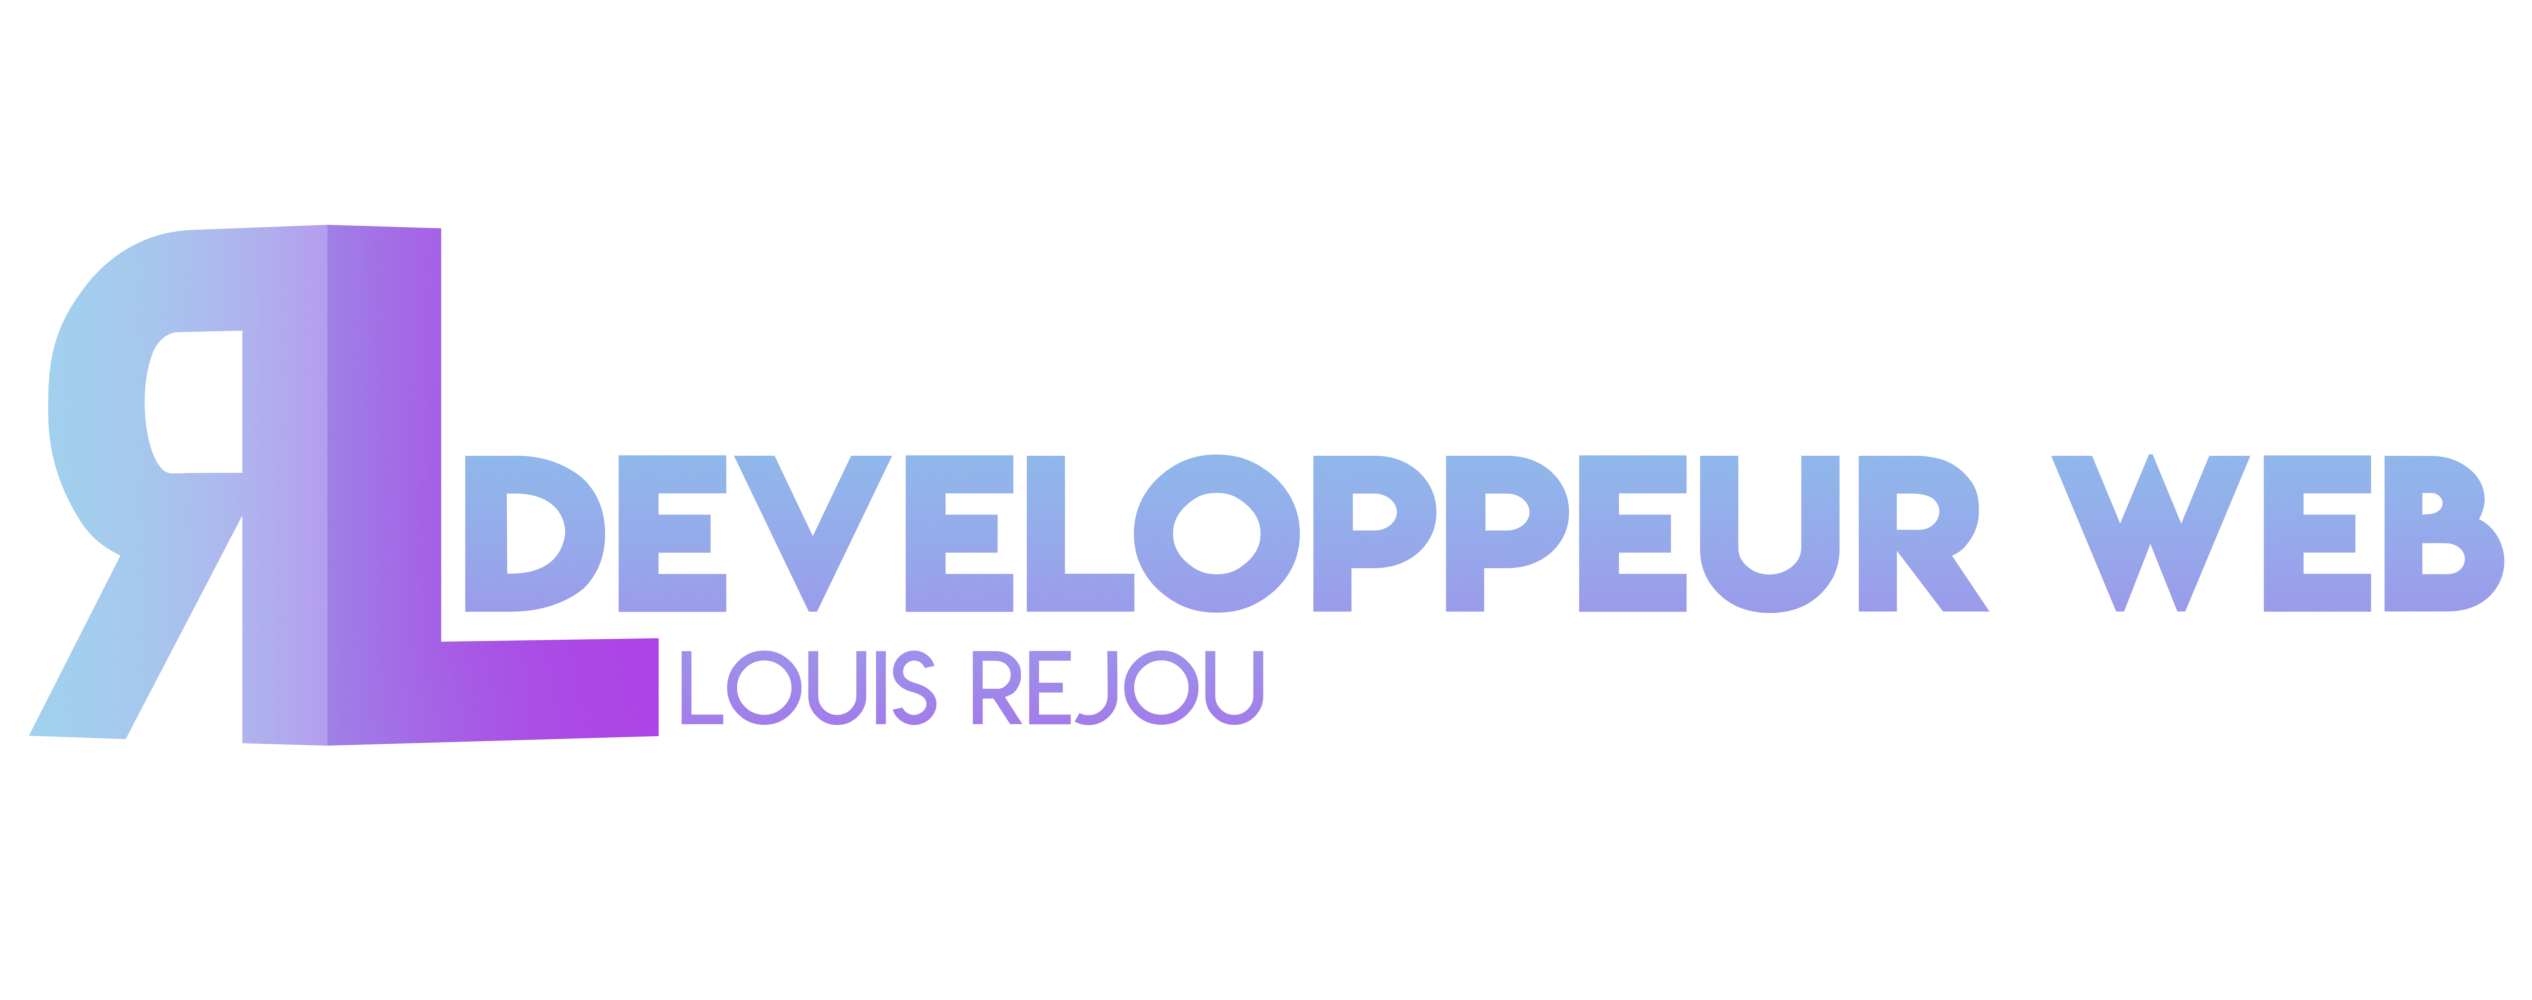 logo : Louis Réjou developpeur web